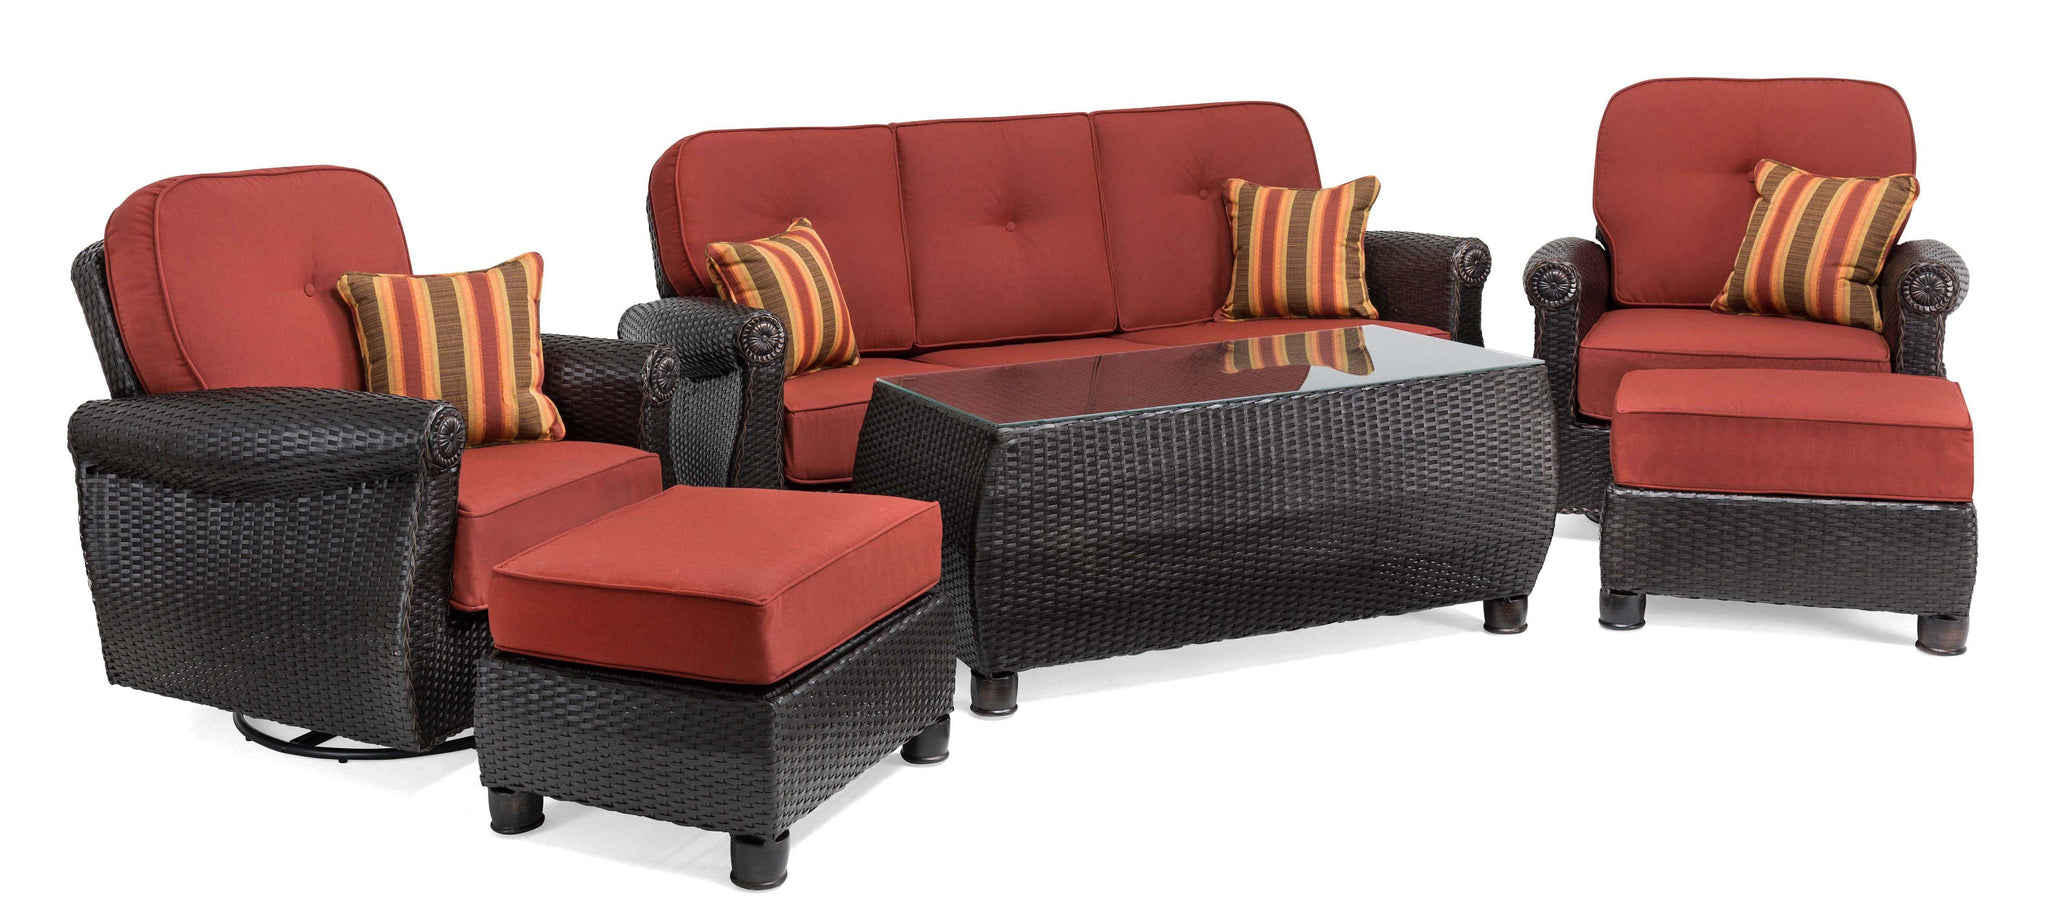 Breckenridge Red 6 Pc Patio Furniture Set Swivel Rockers